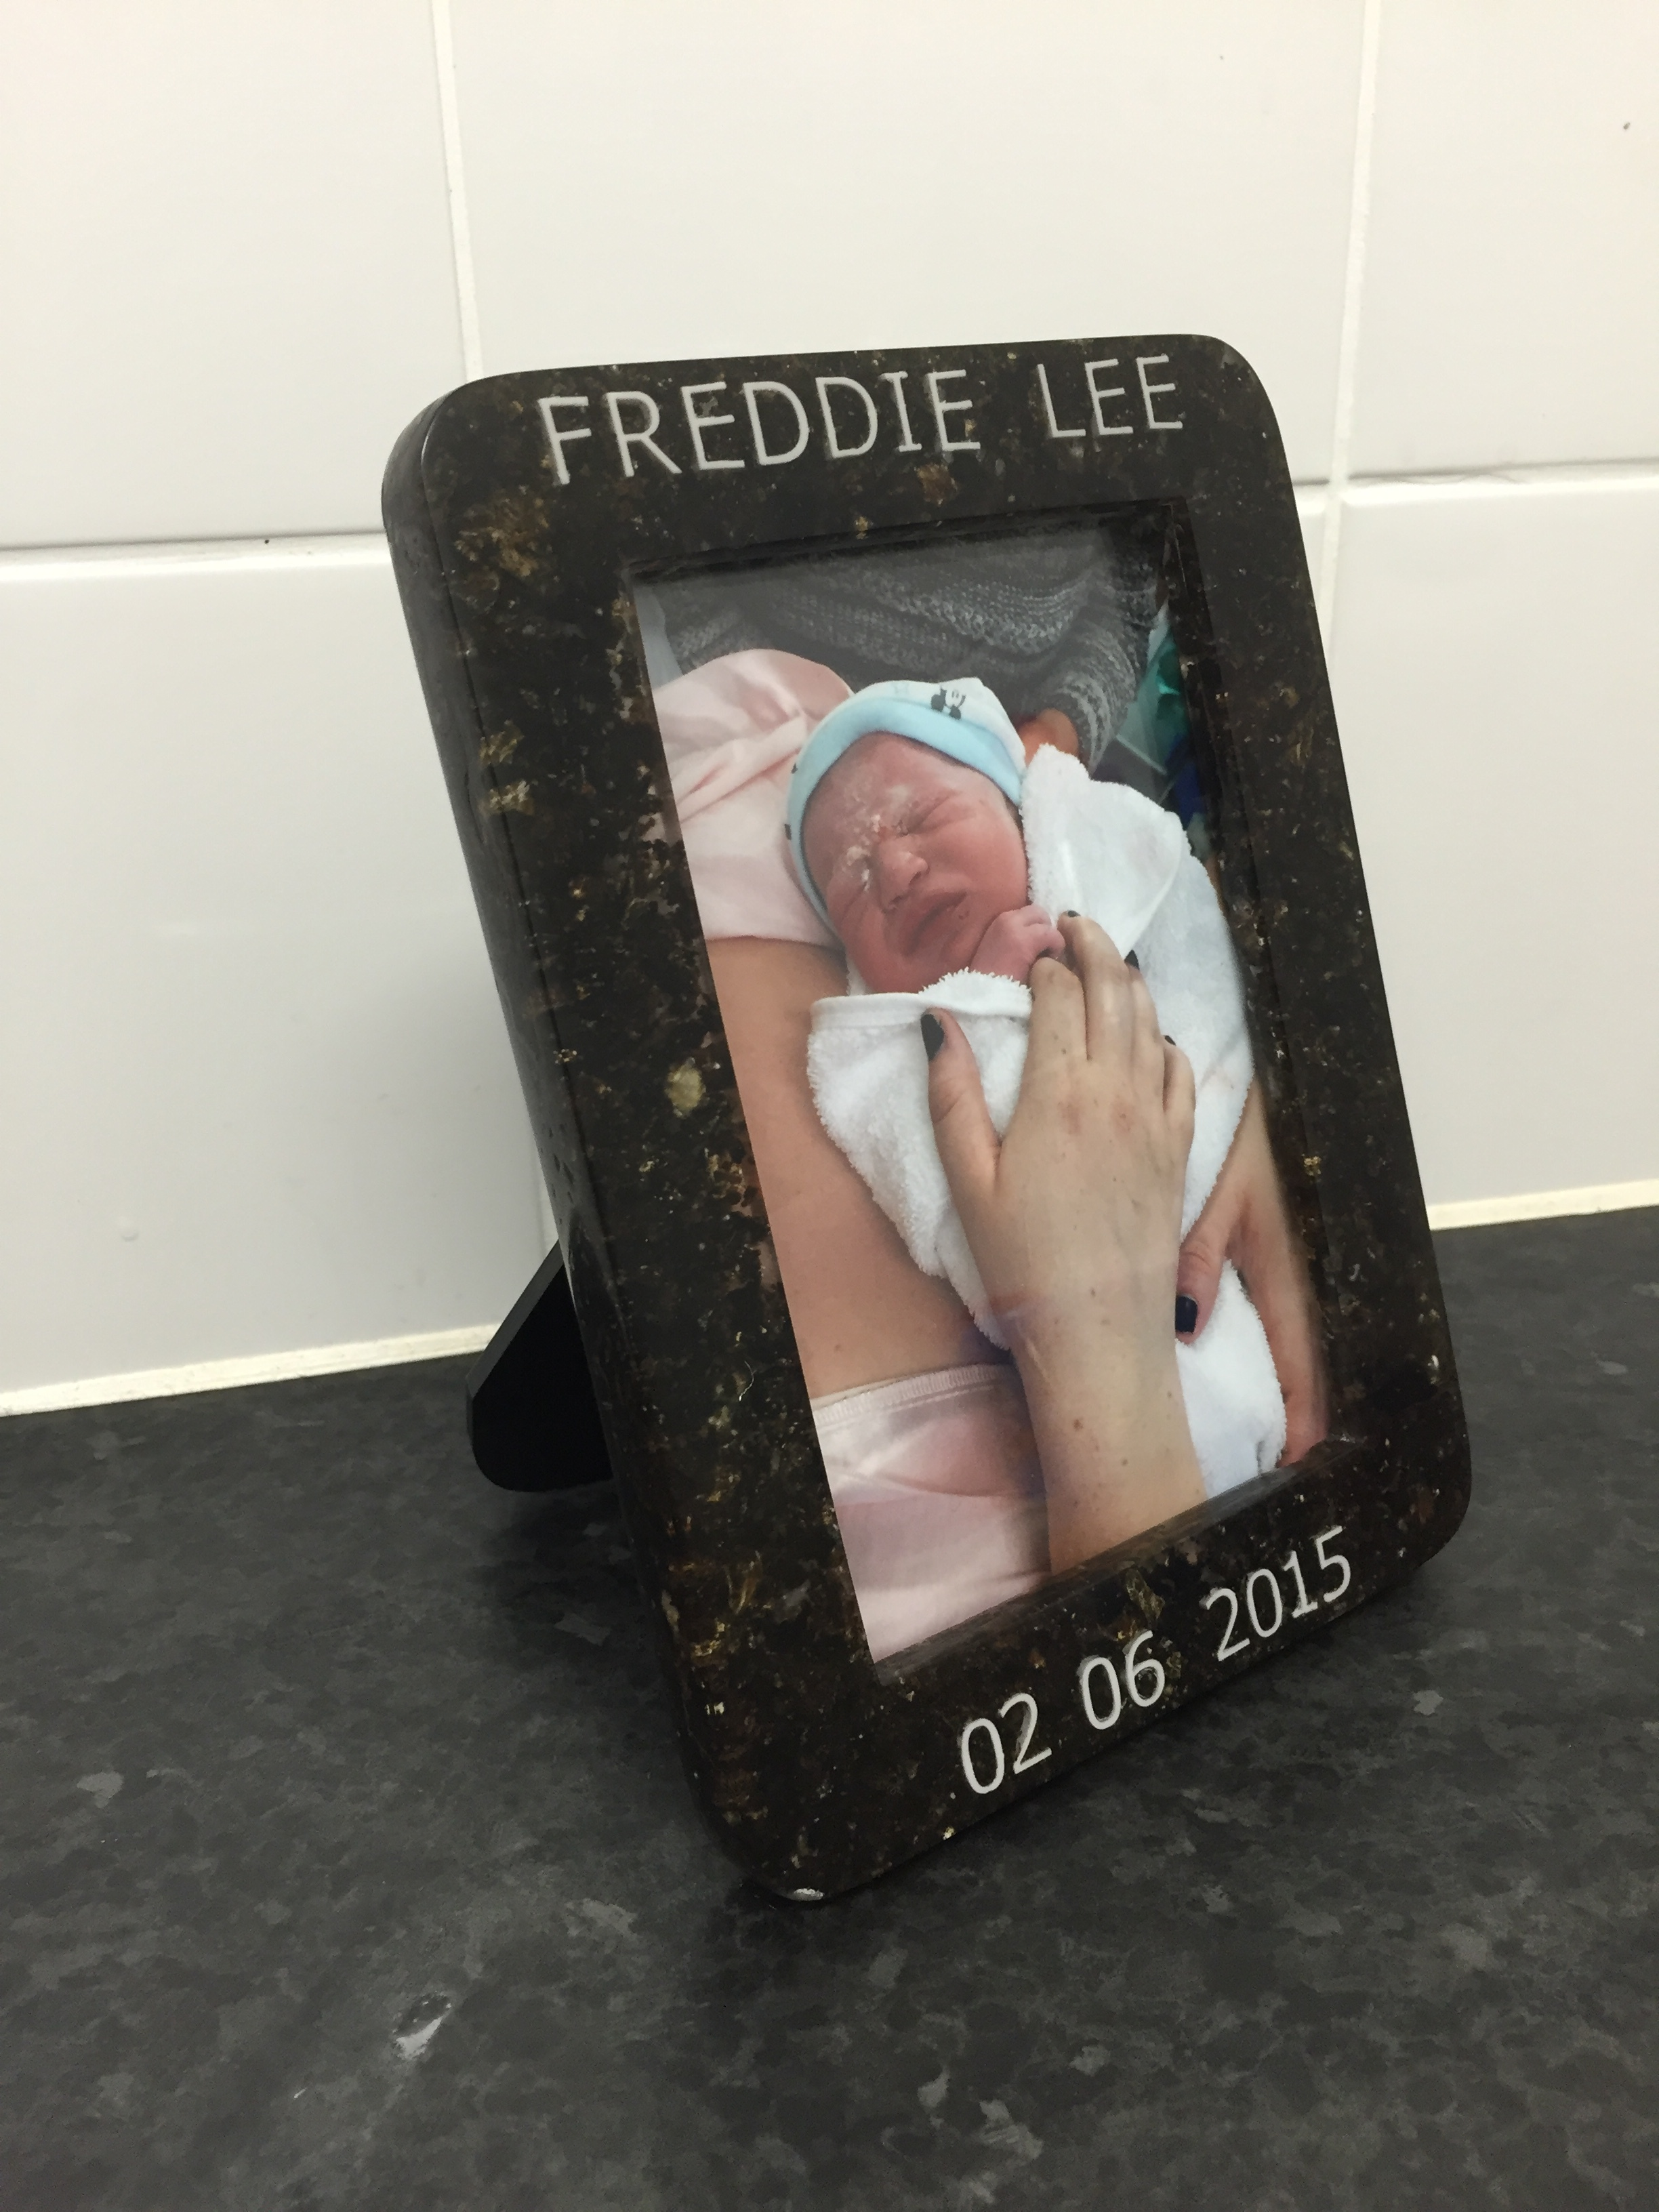 Previous Client's Placenta Photo Frame (Shannon, Essex UK)